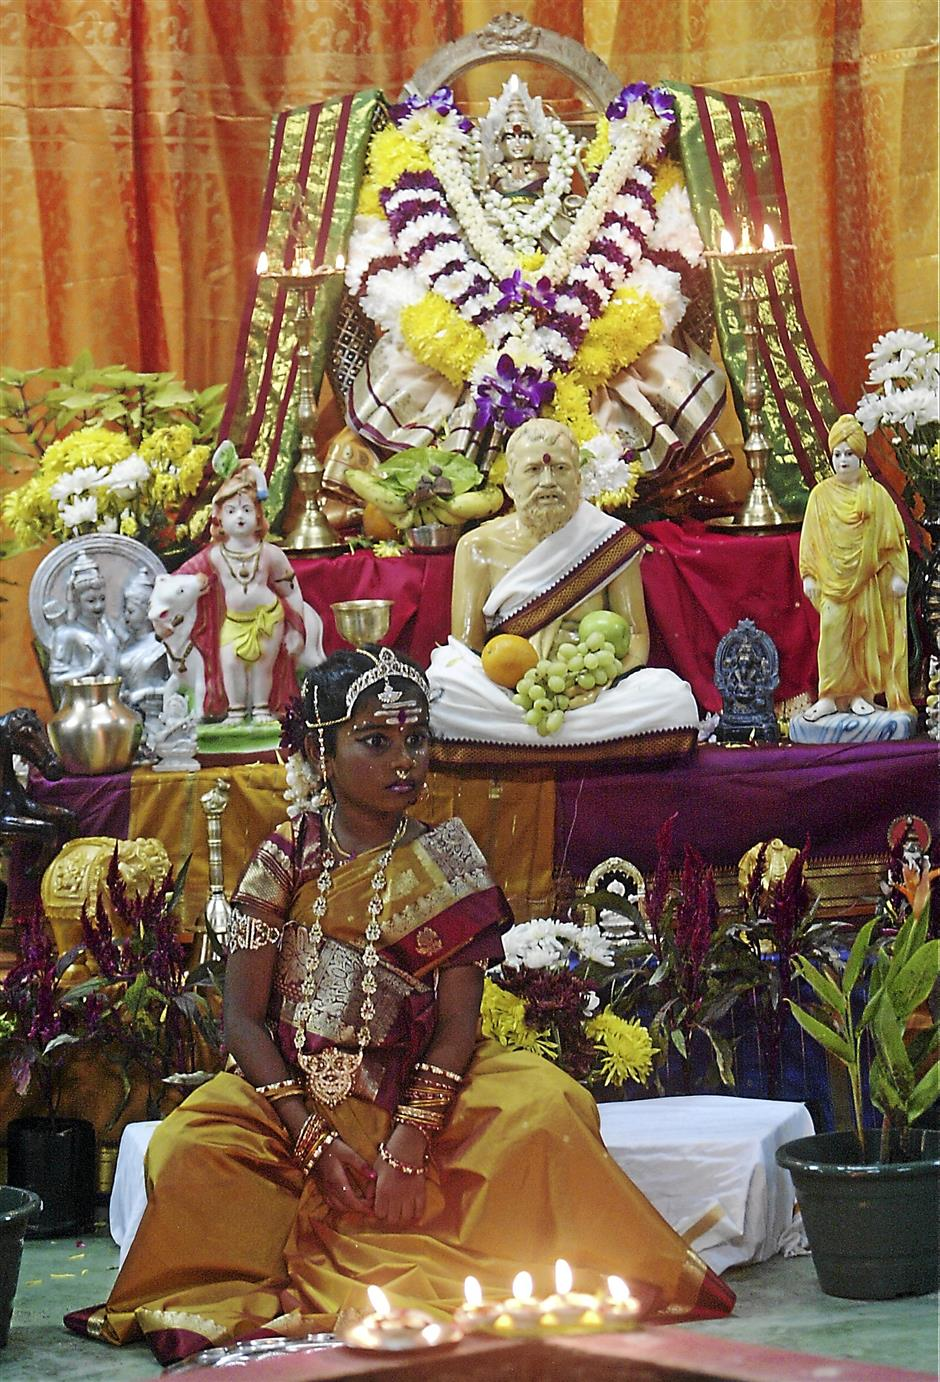 Chinese and Hindus pray and celebrate festivals for nine days | The